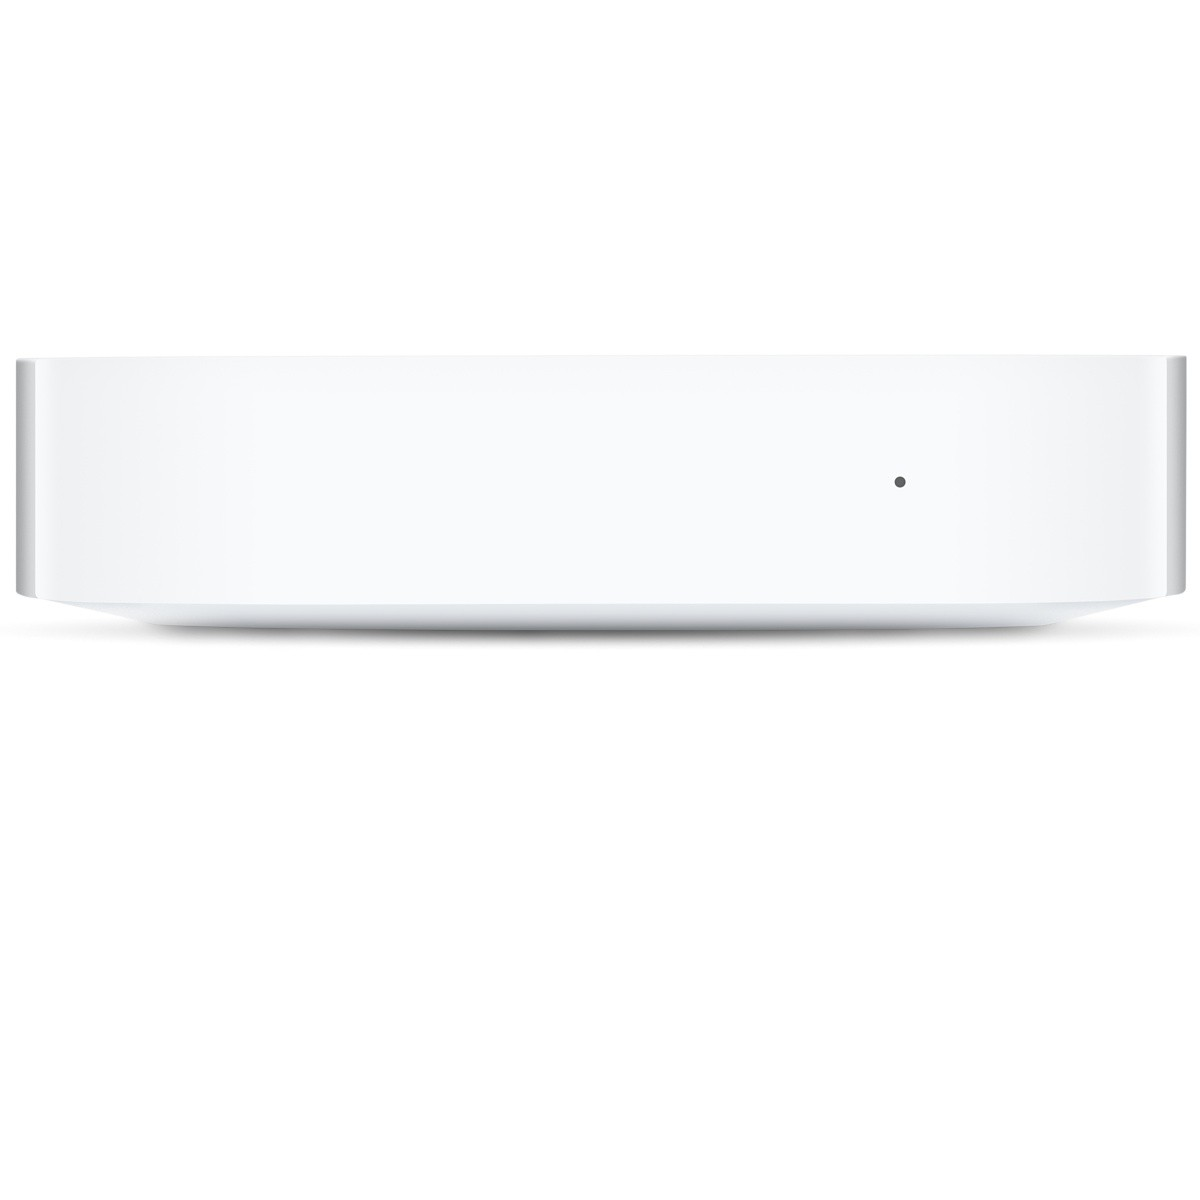 AirPort Express mc414z/a